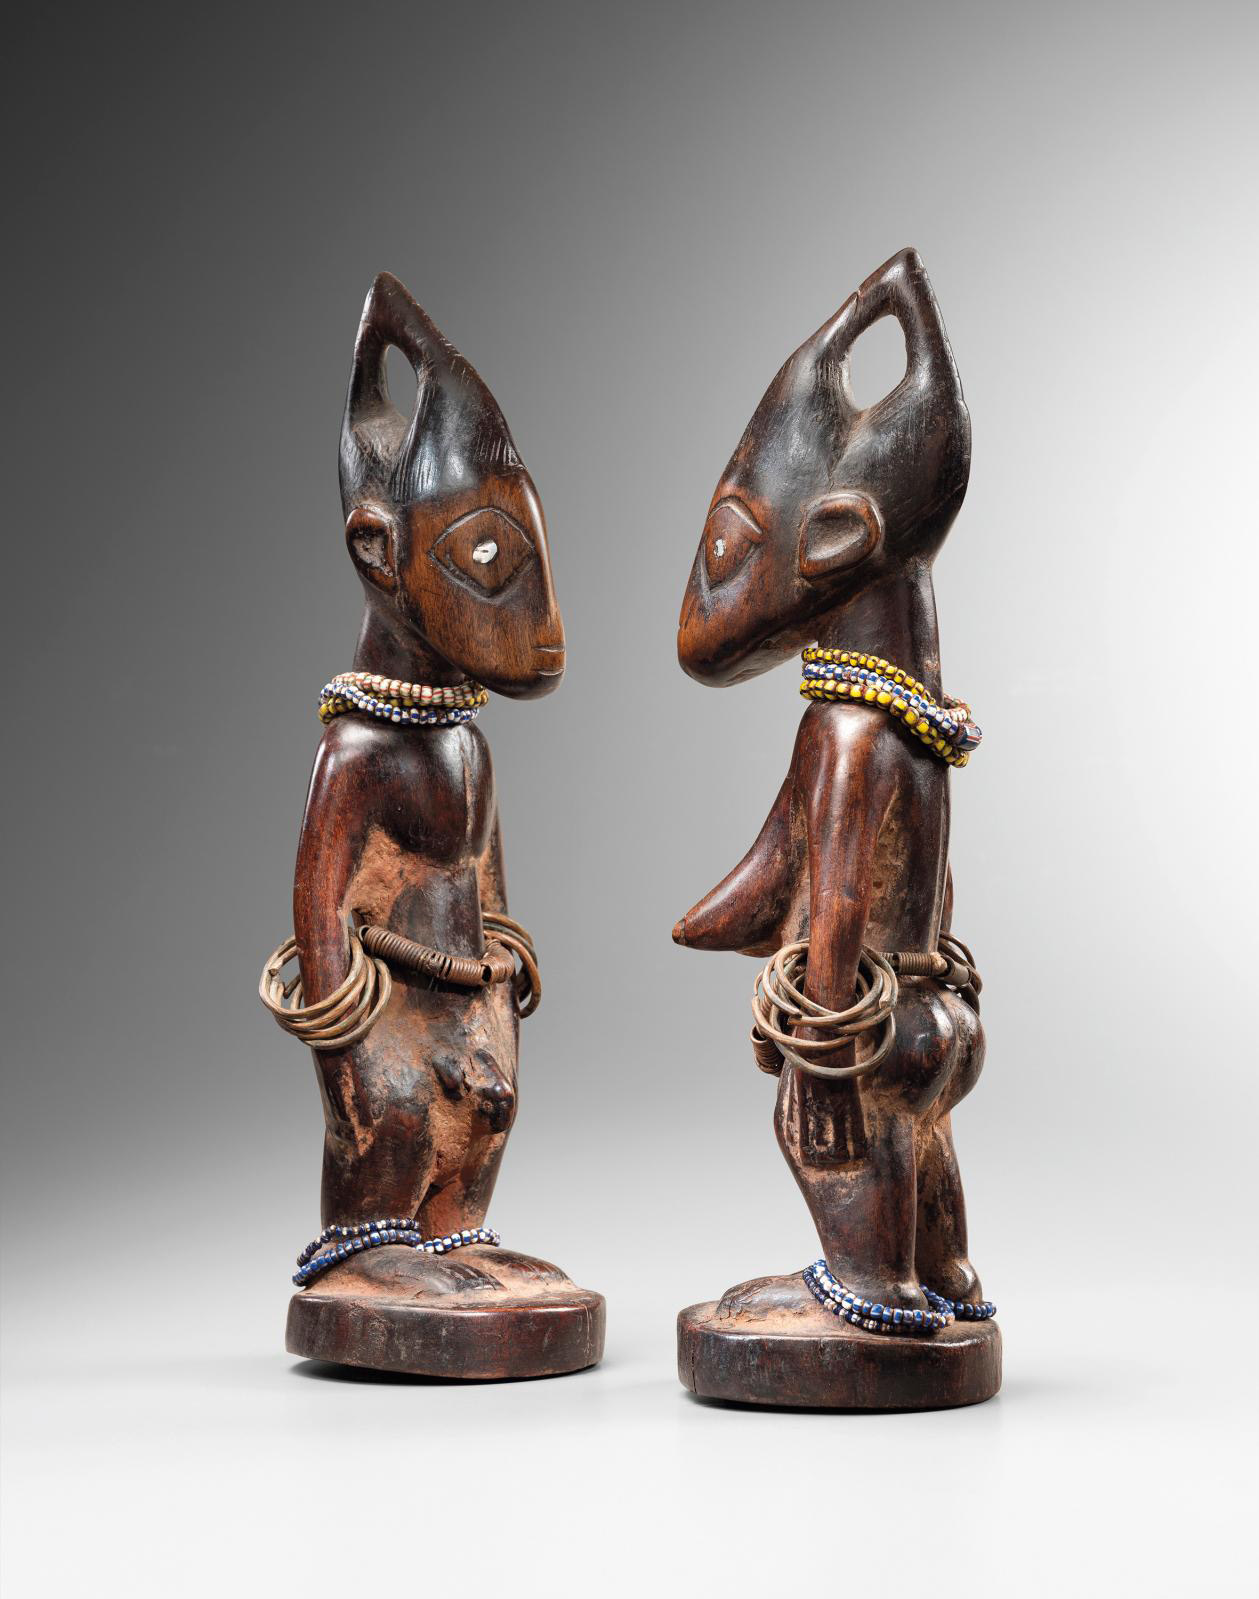 Ibeji figures from Nigeria, wood, beads, metal, h. 29 and 28.5 cm (11.4 and 11.2 in), Galerie Didier Claes.Courtesy of Galerie Didier Clae